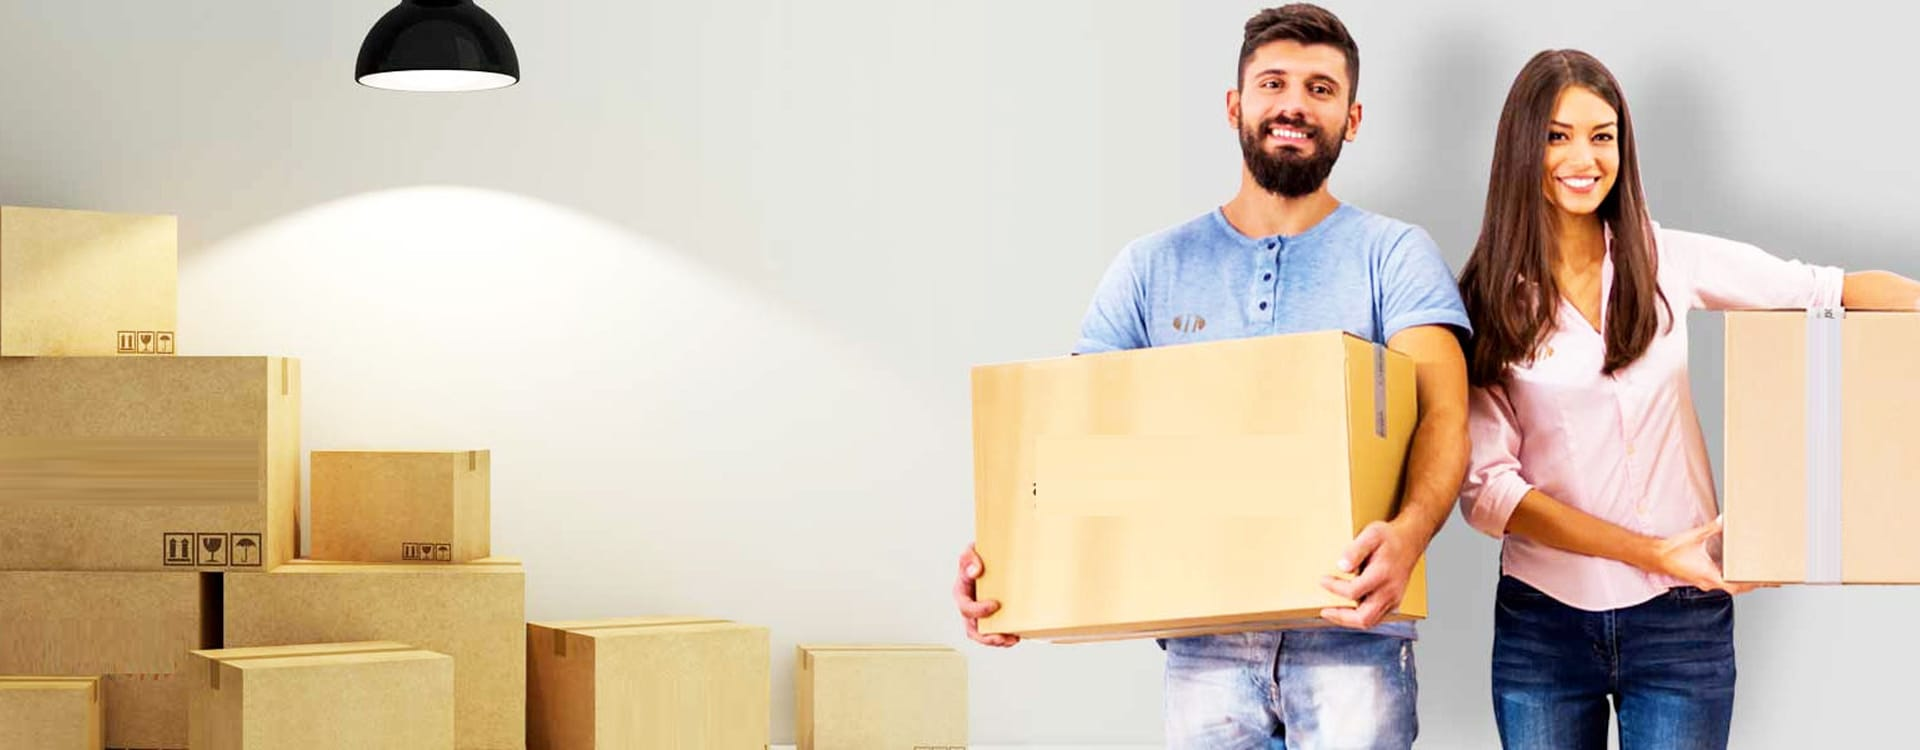 Packers and Movers Services in Pakistan